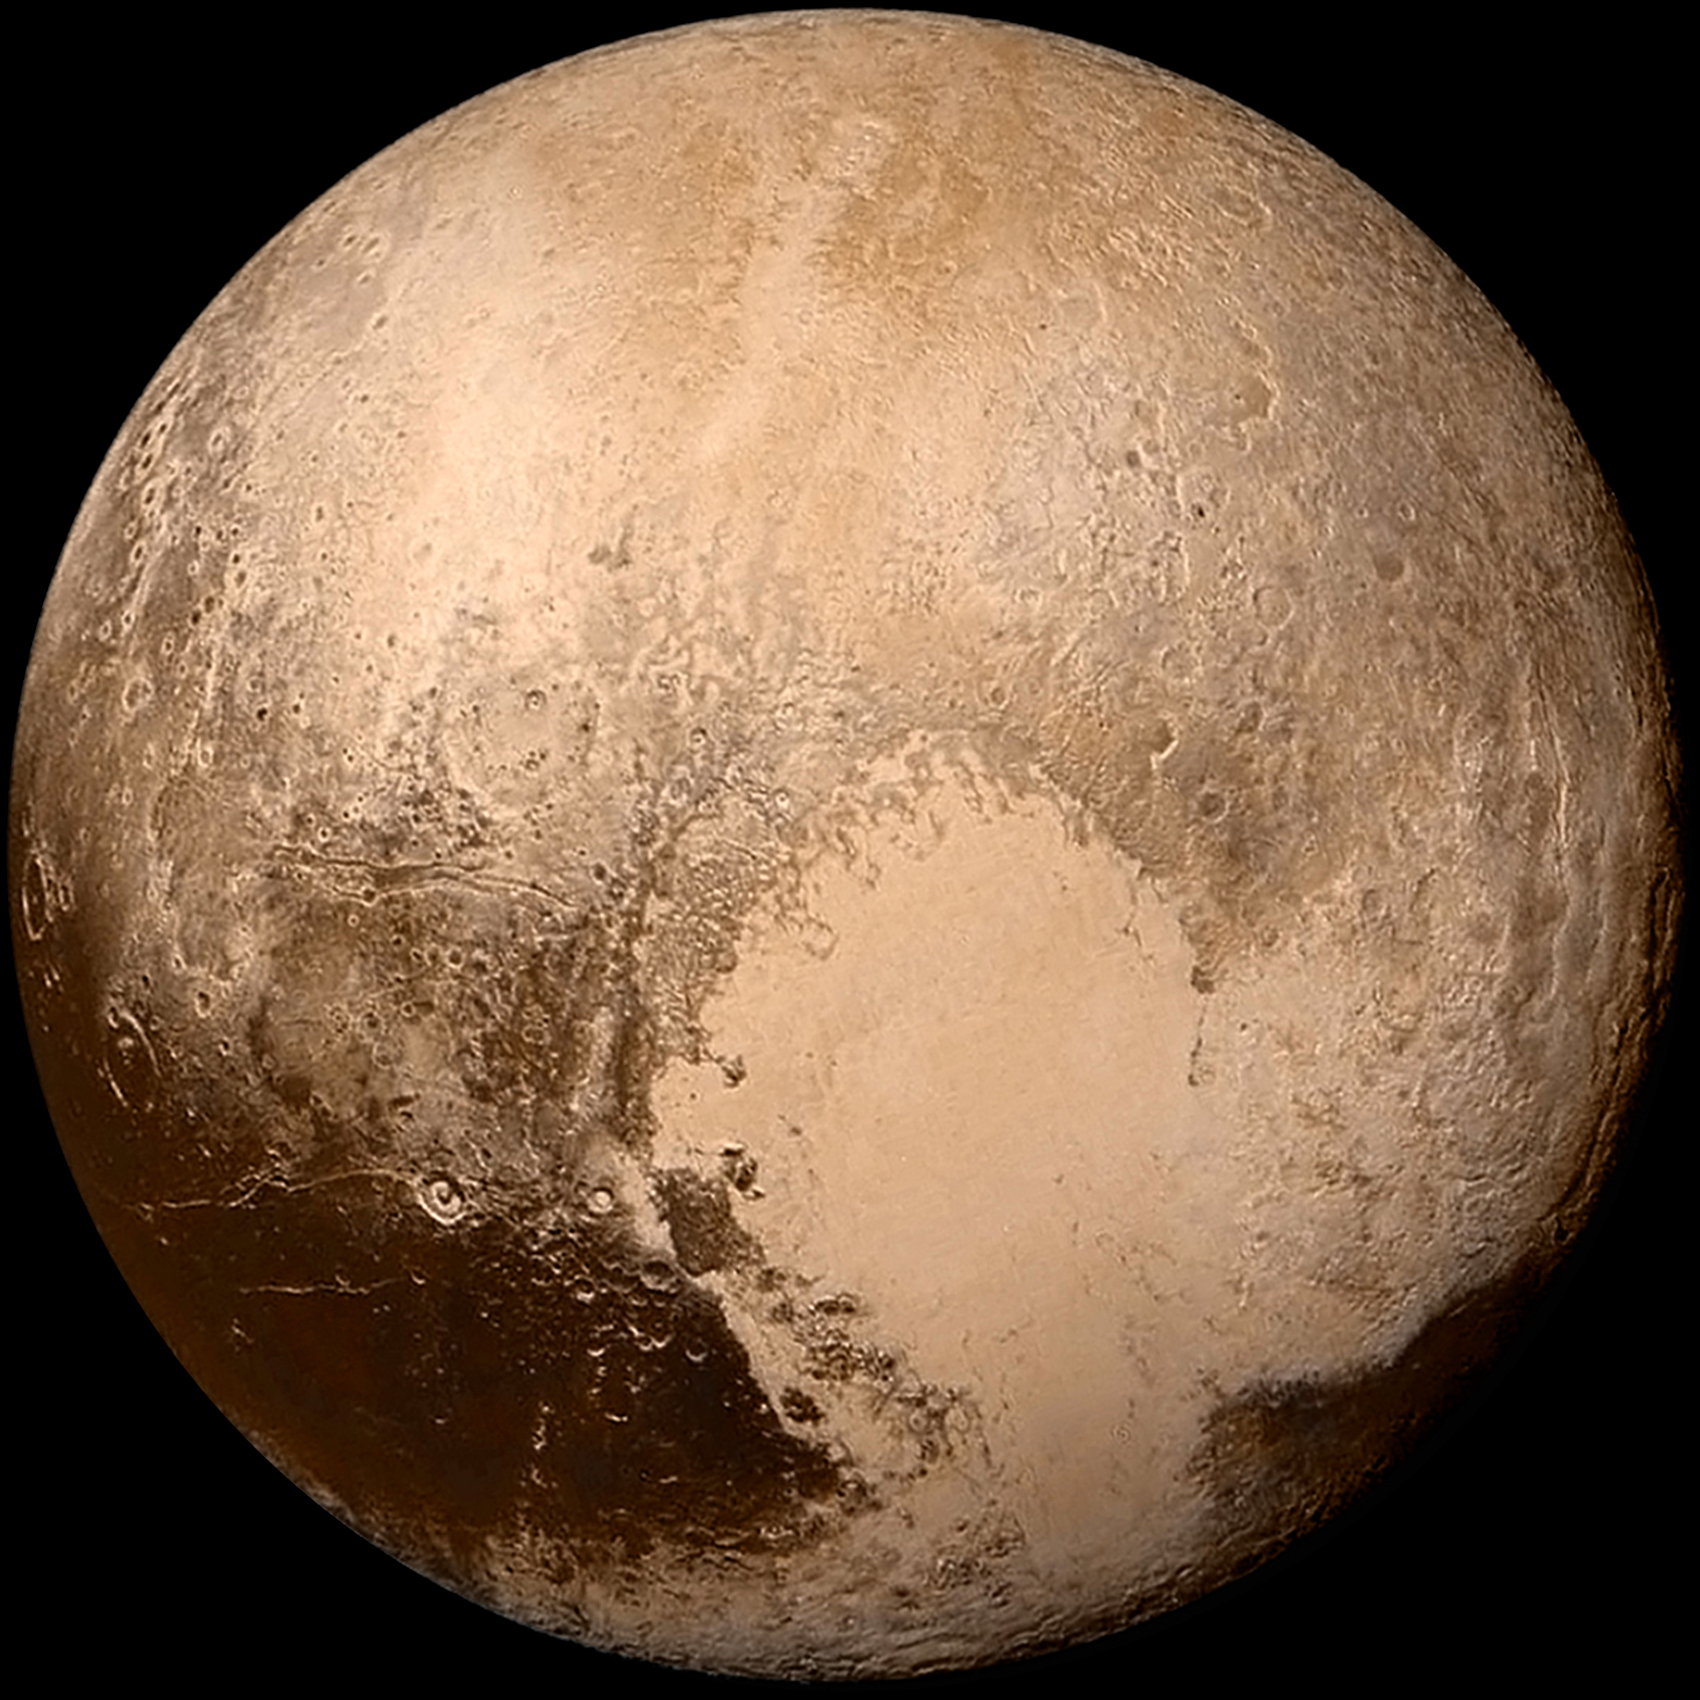 Pluto as imaged by the New Horizons probe on 14 July